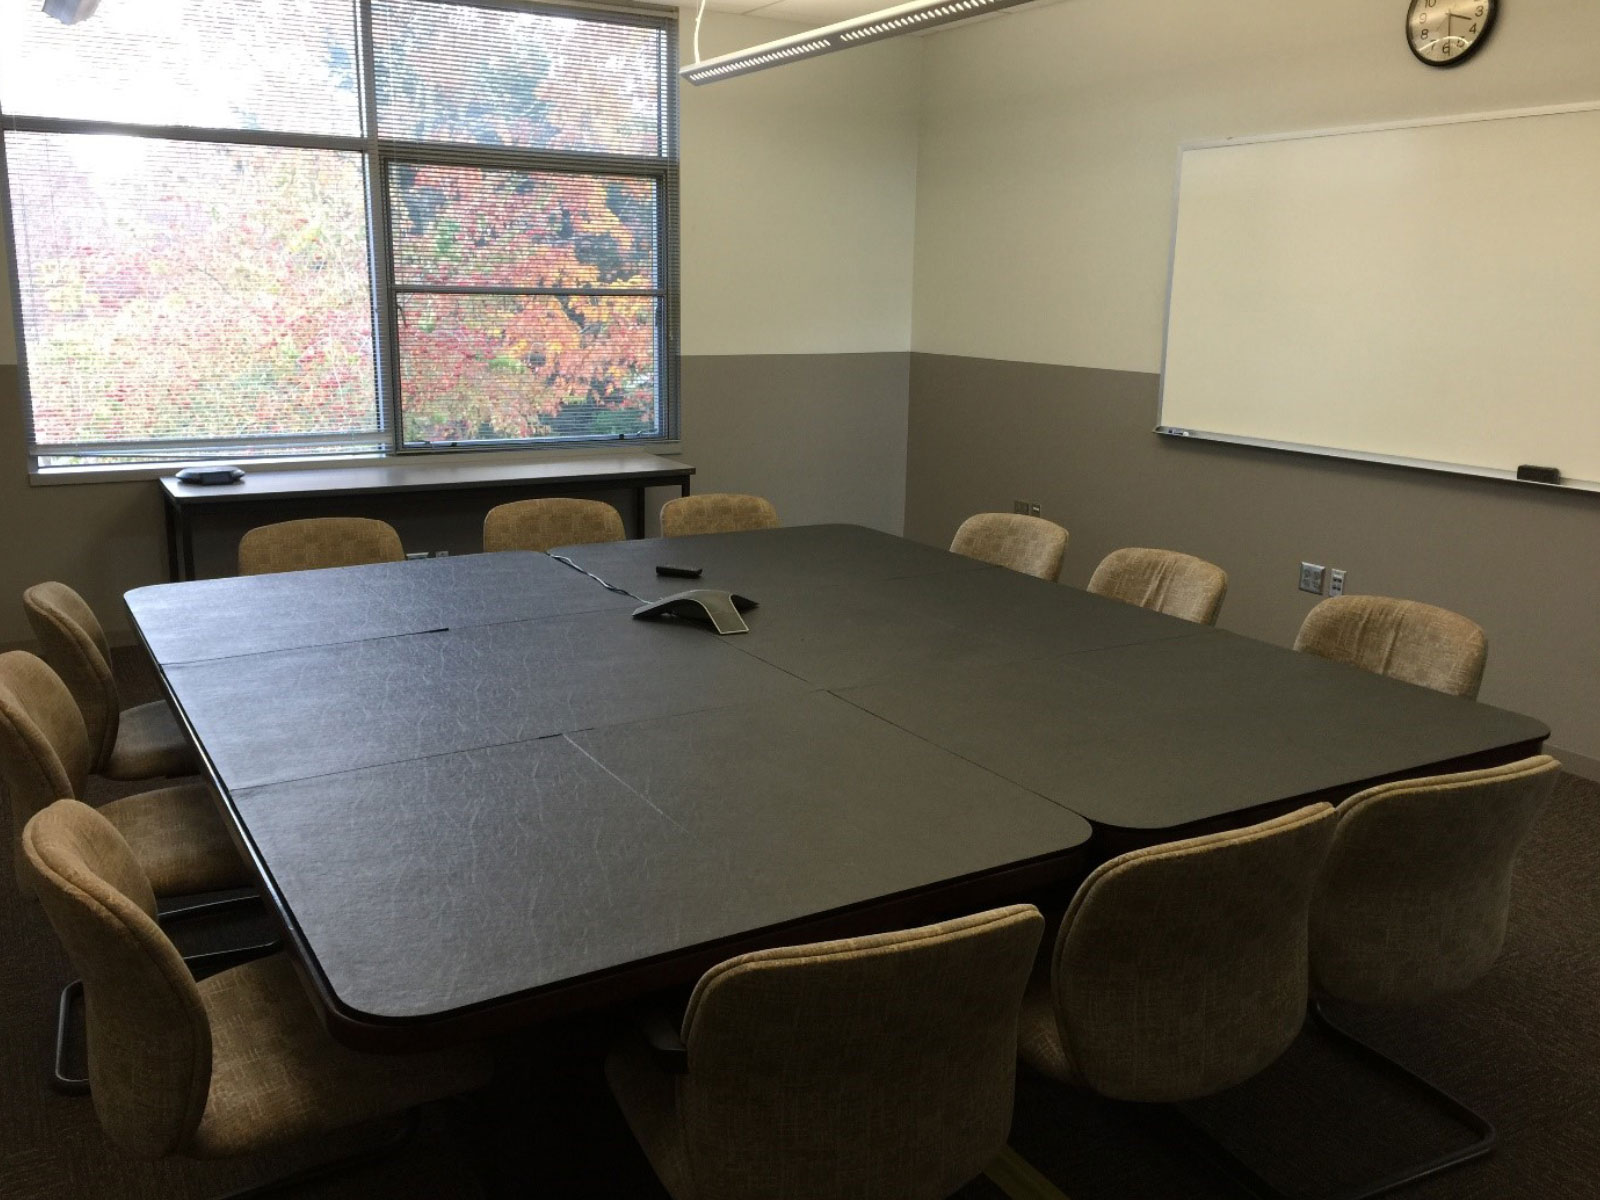 Conference room with 12 chairs and a table with center phone, white board on the wall and window in classroom W207 on the Wilsonville campus